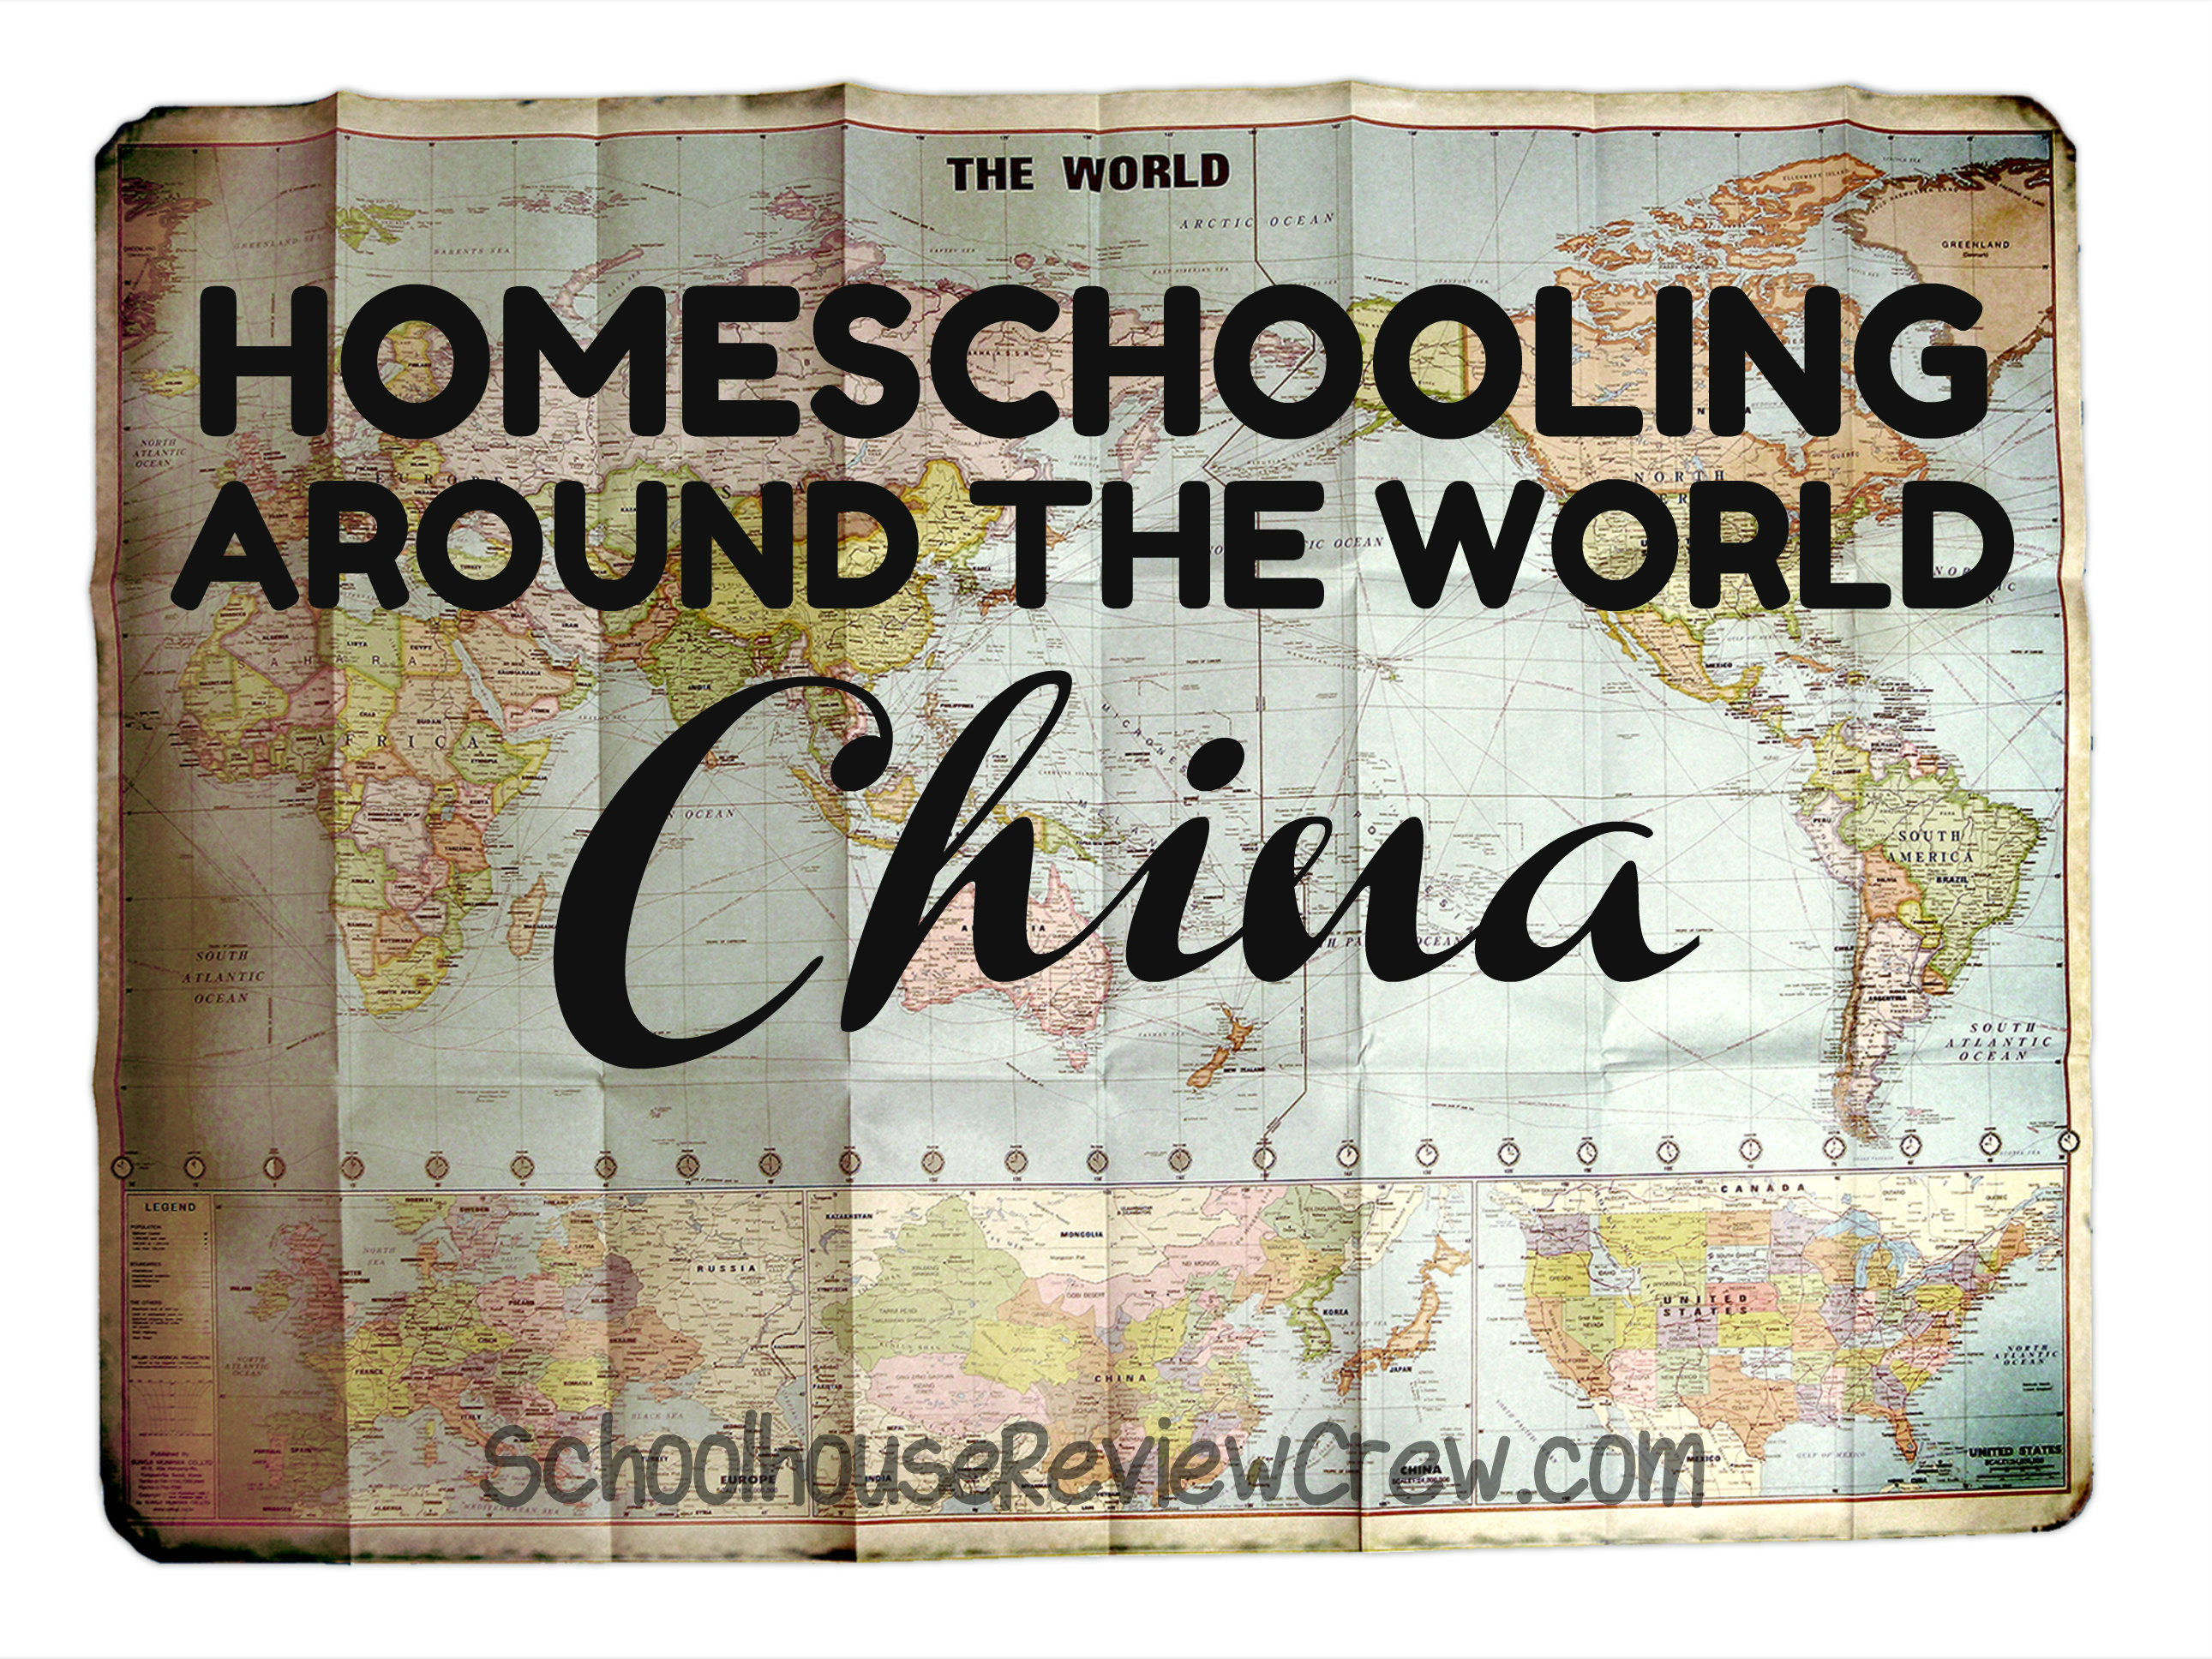 Homeschooling on the Other Side of the Earth